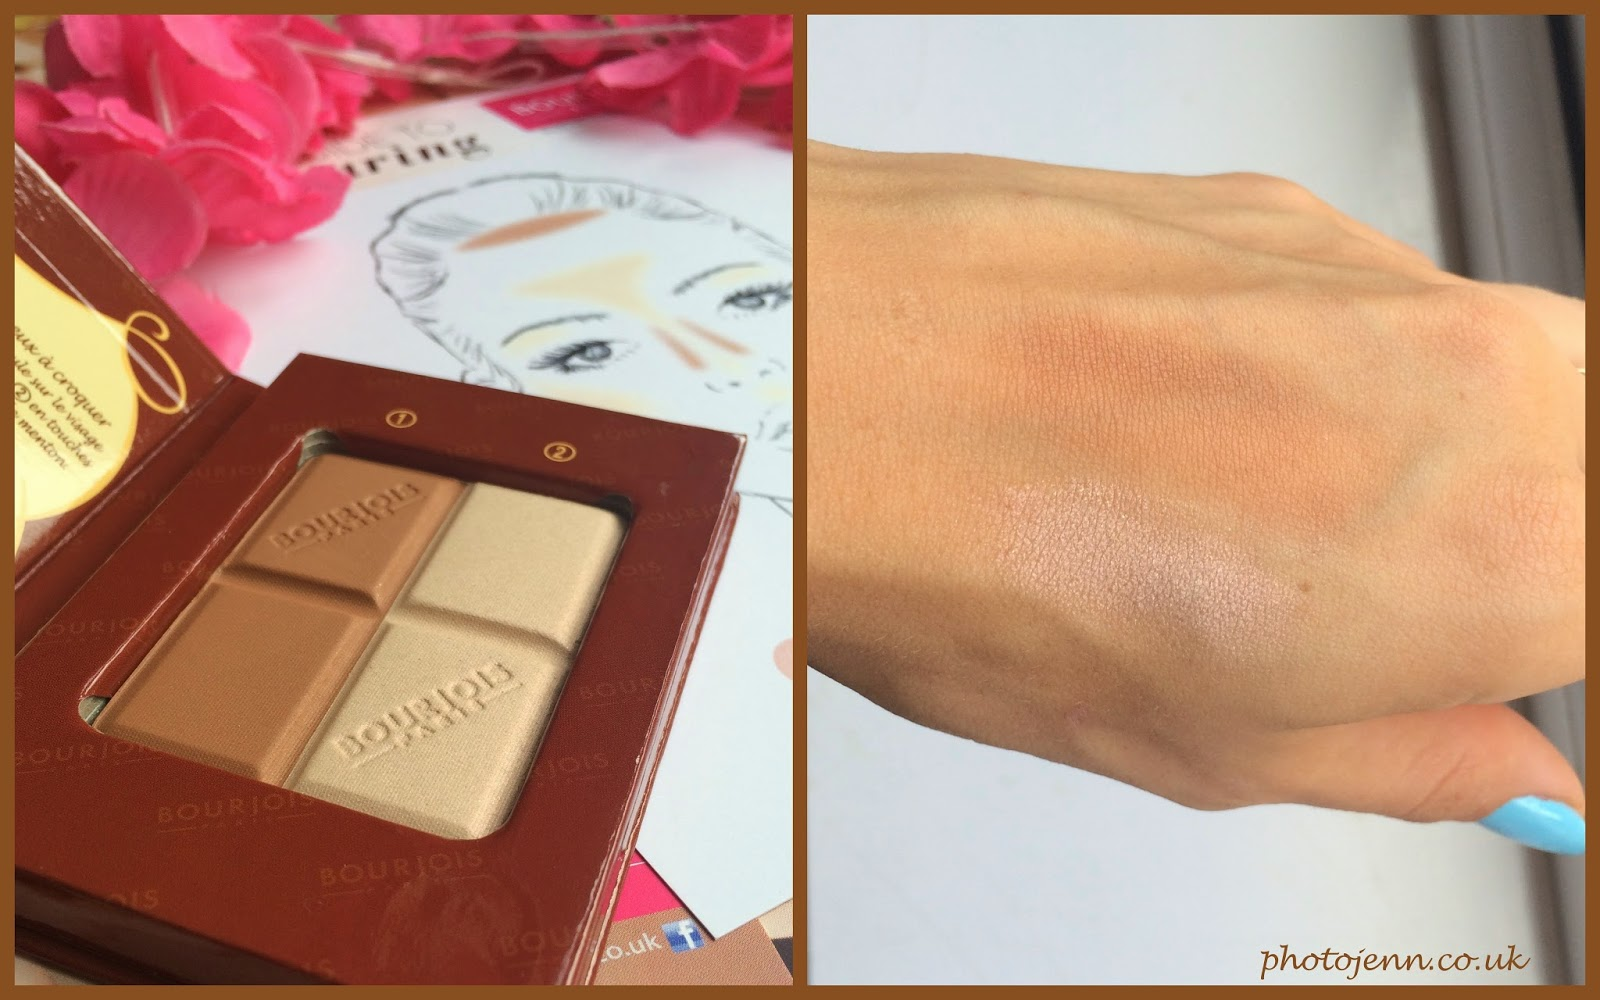 bourjois-Delice-De-Poudre-Duo-contour-highlight-swatch